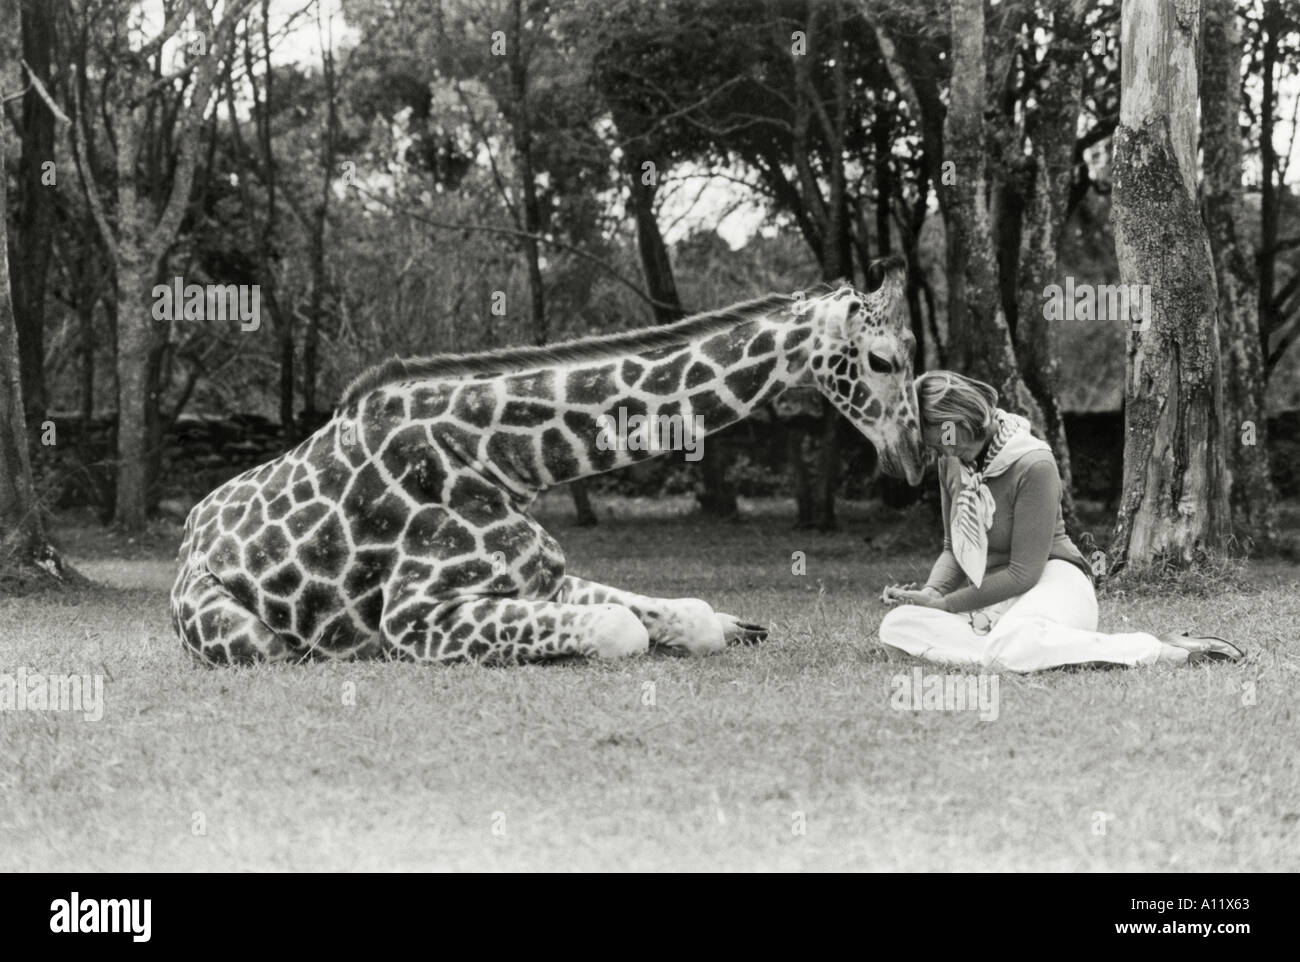 Betty Leslie Melville, writer and lecturer, with Marlon, a Rothschild giraffe in Kenya 1977 - Stock Image